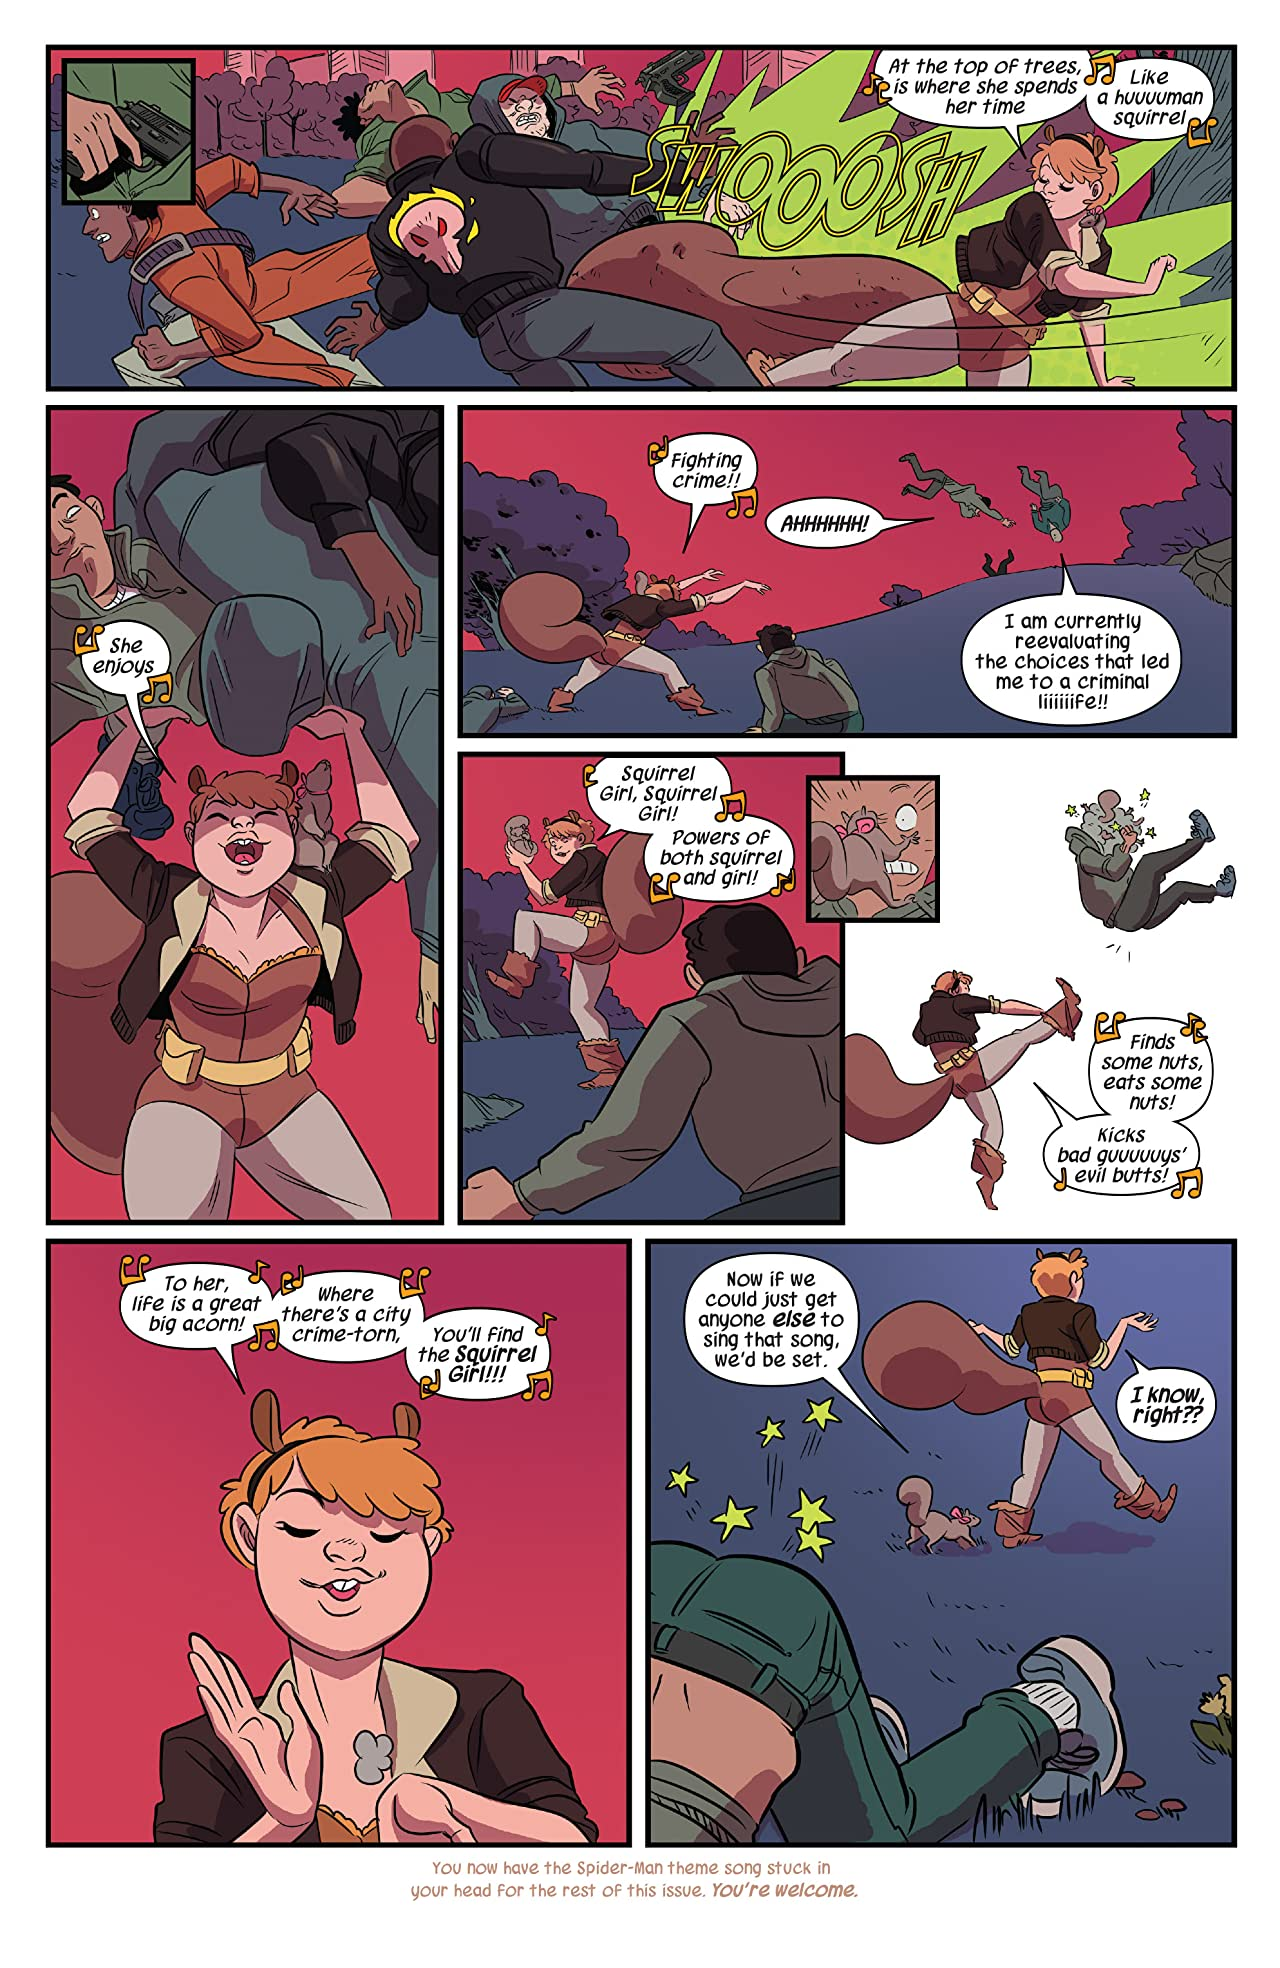 The Unbeatable Squirrel Girl Vol. 1: Squirrel Power